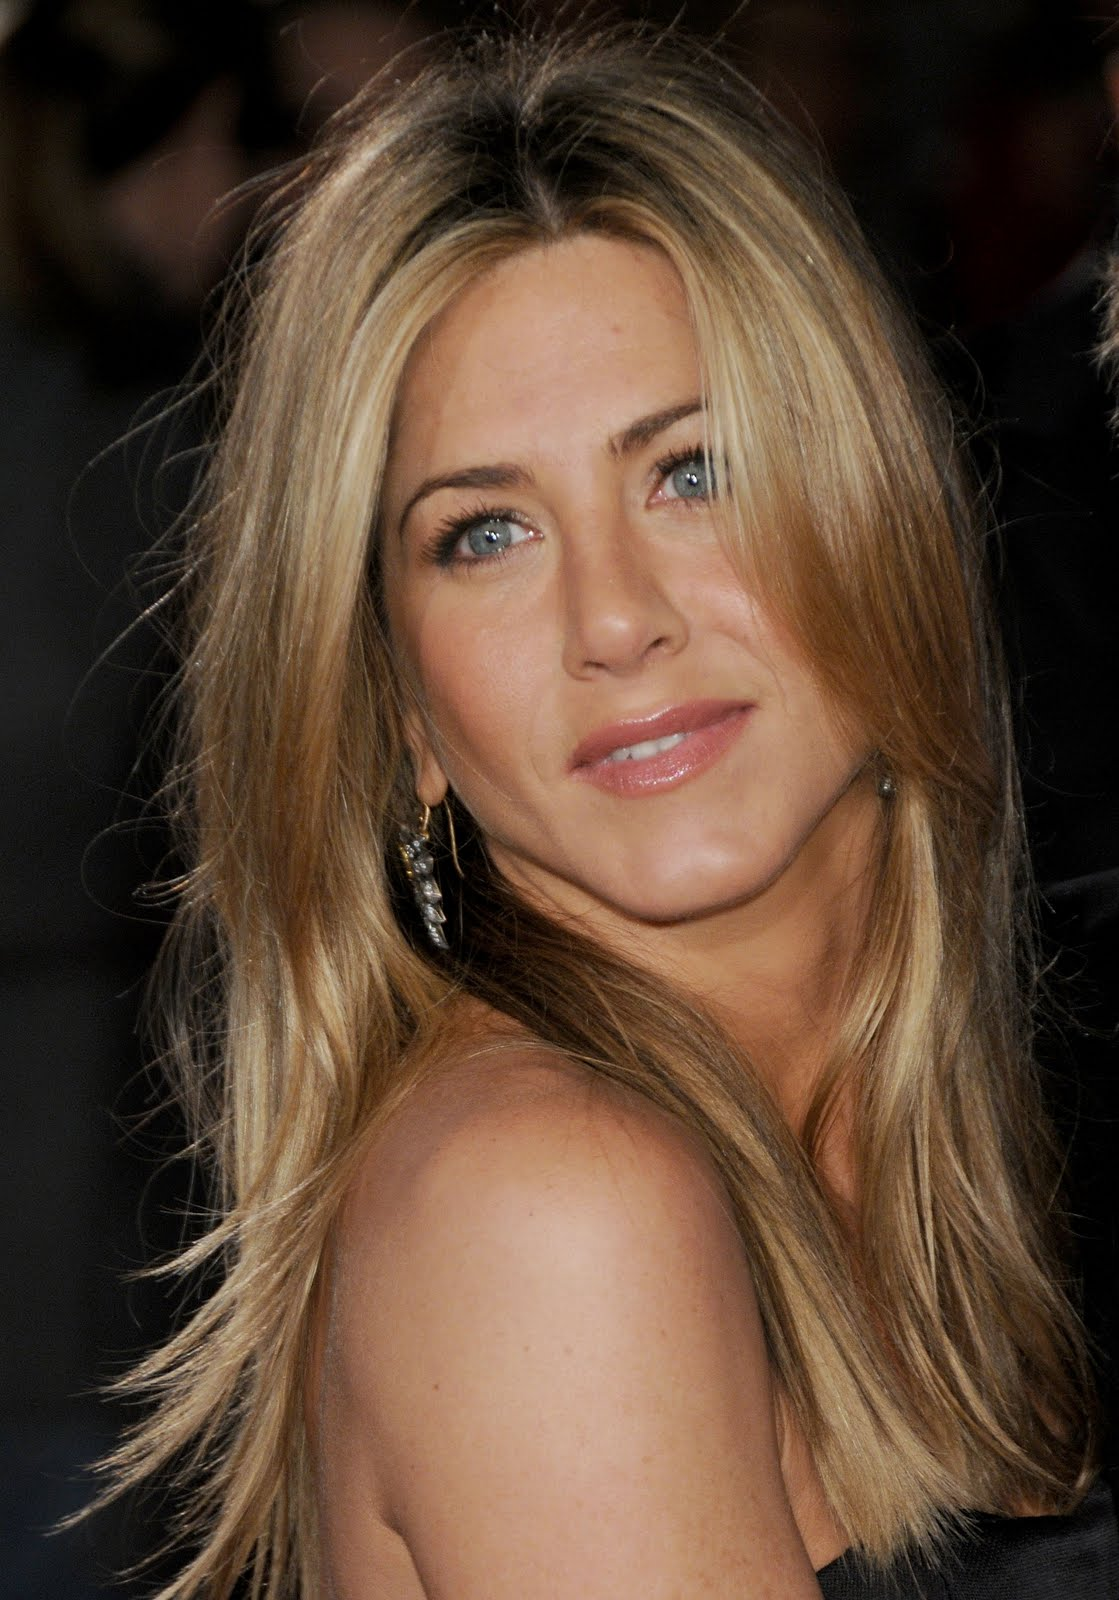 Jennifer Aniston Special Pictures 6 Film Actresses